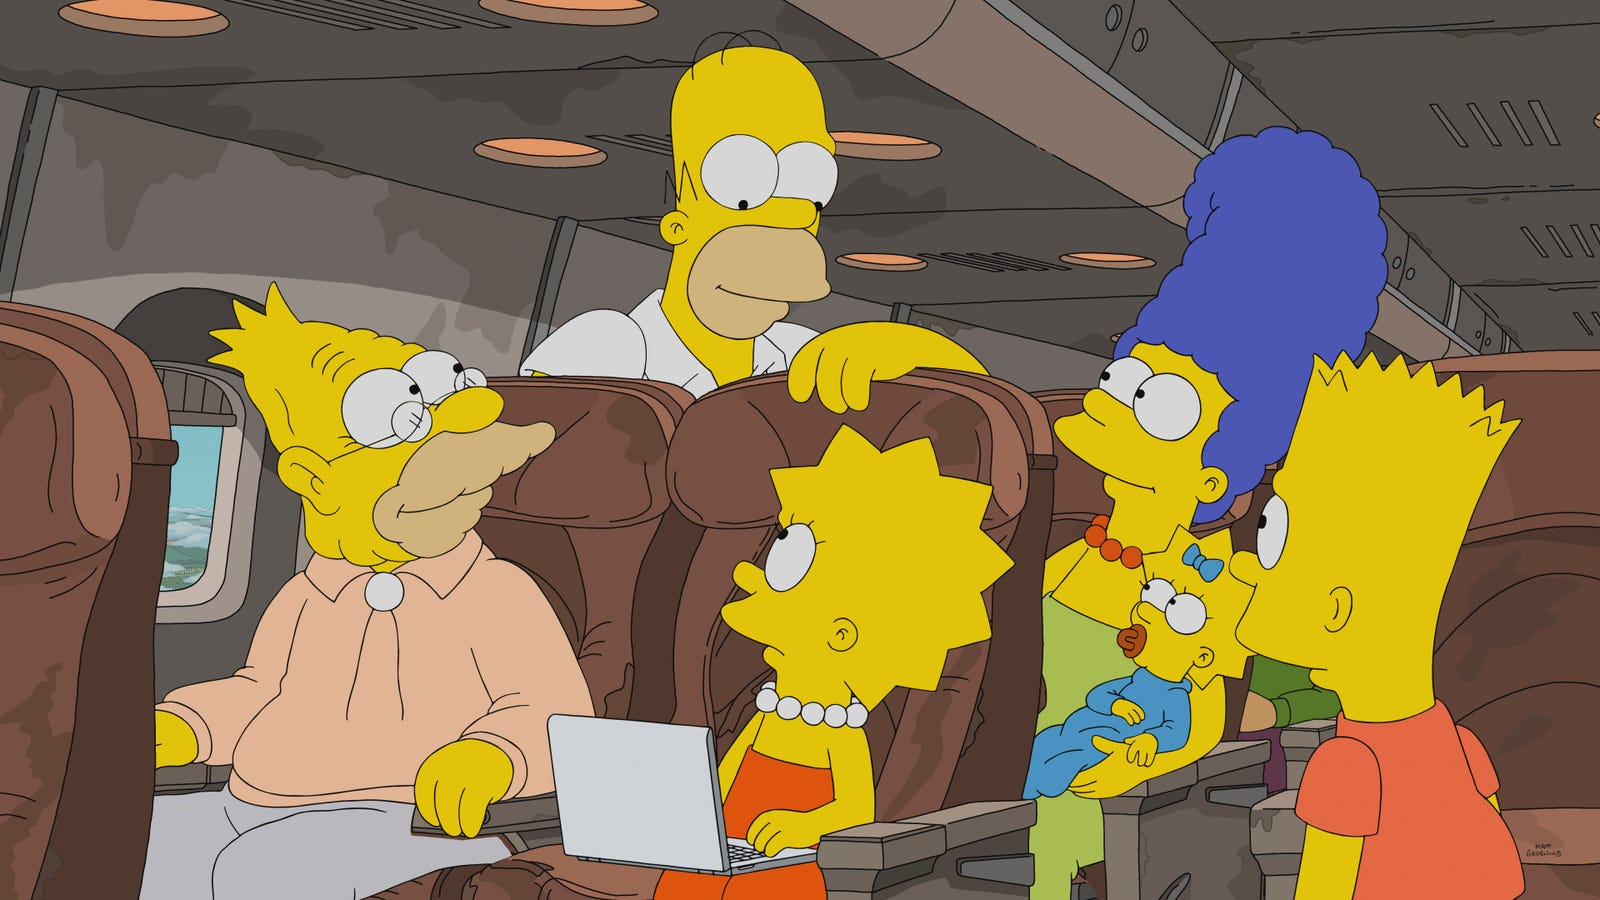 The Simpsons finds the sweet spot as Grampa confronts an old wrong